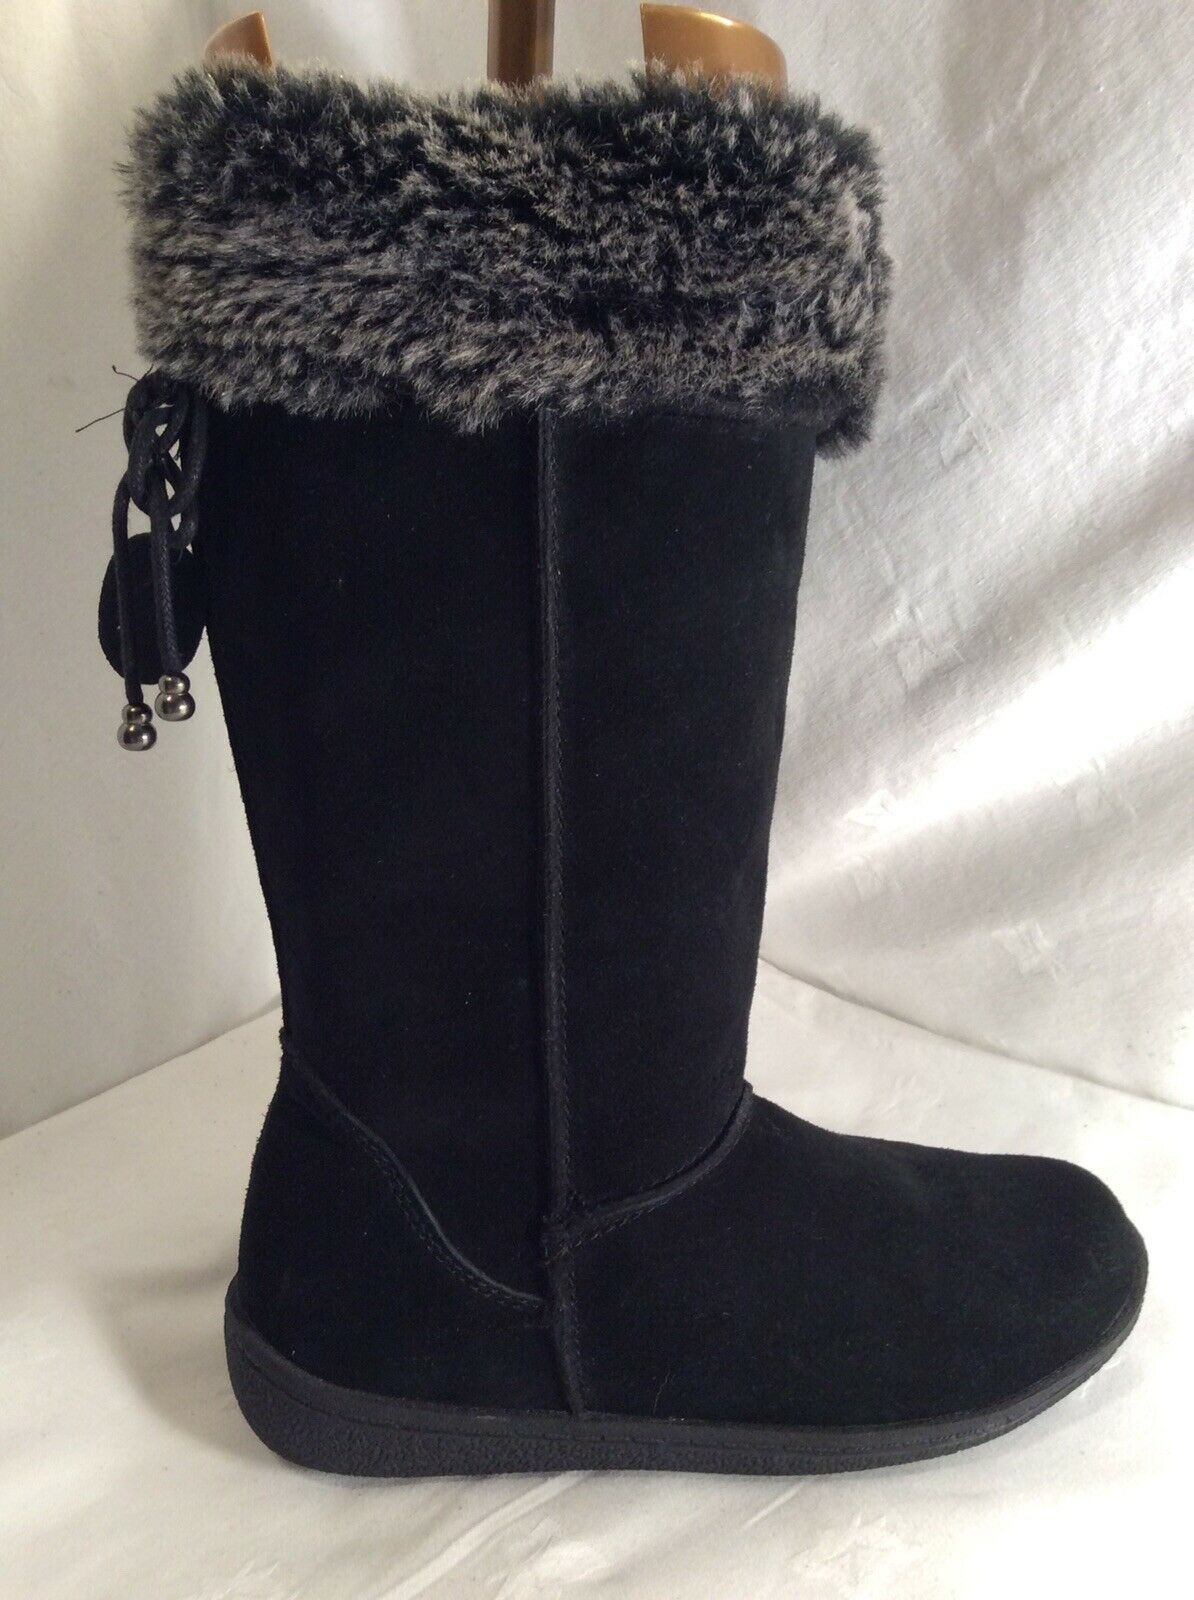 HOBOS Ladies Leather Mid Calf Boots Size 6